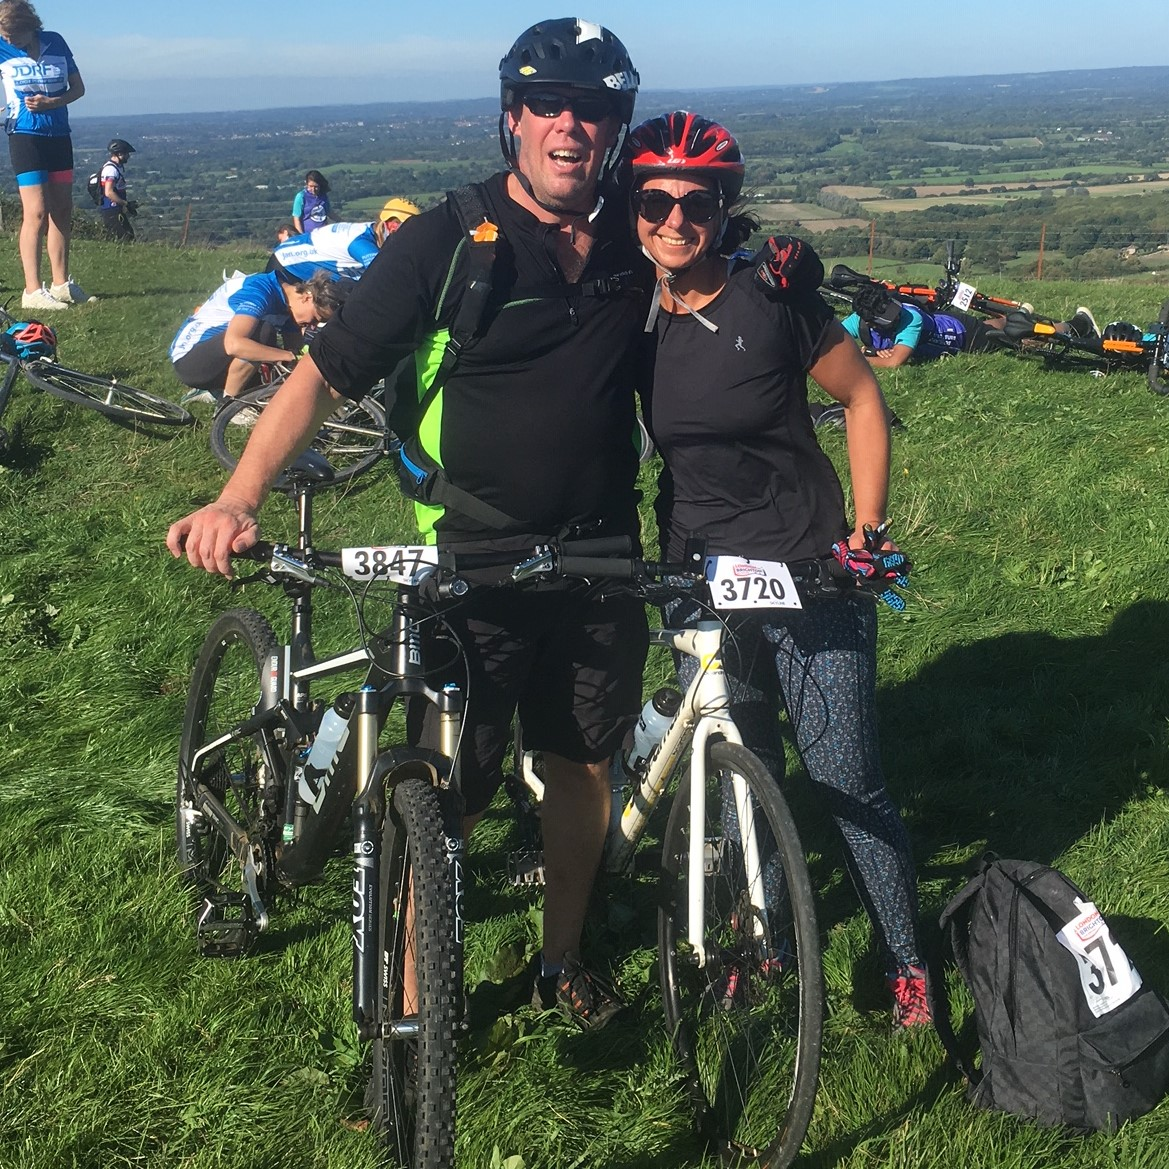 Lesley & ian's london to brighton - Raised £820